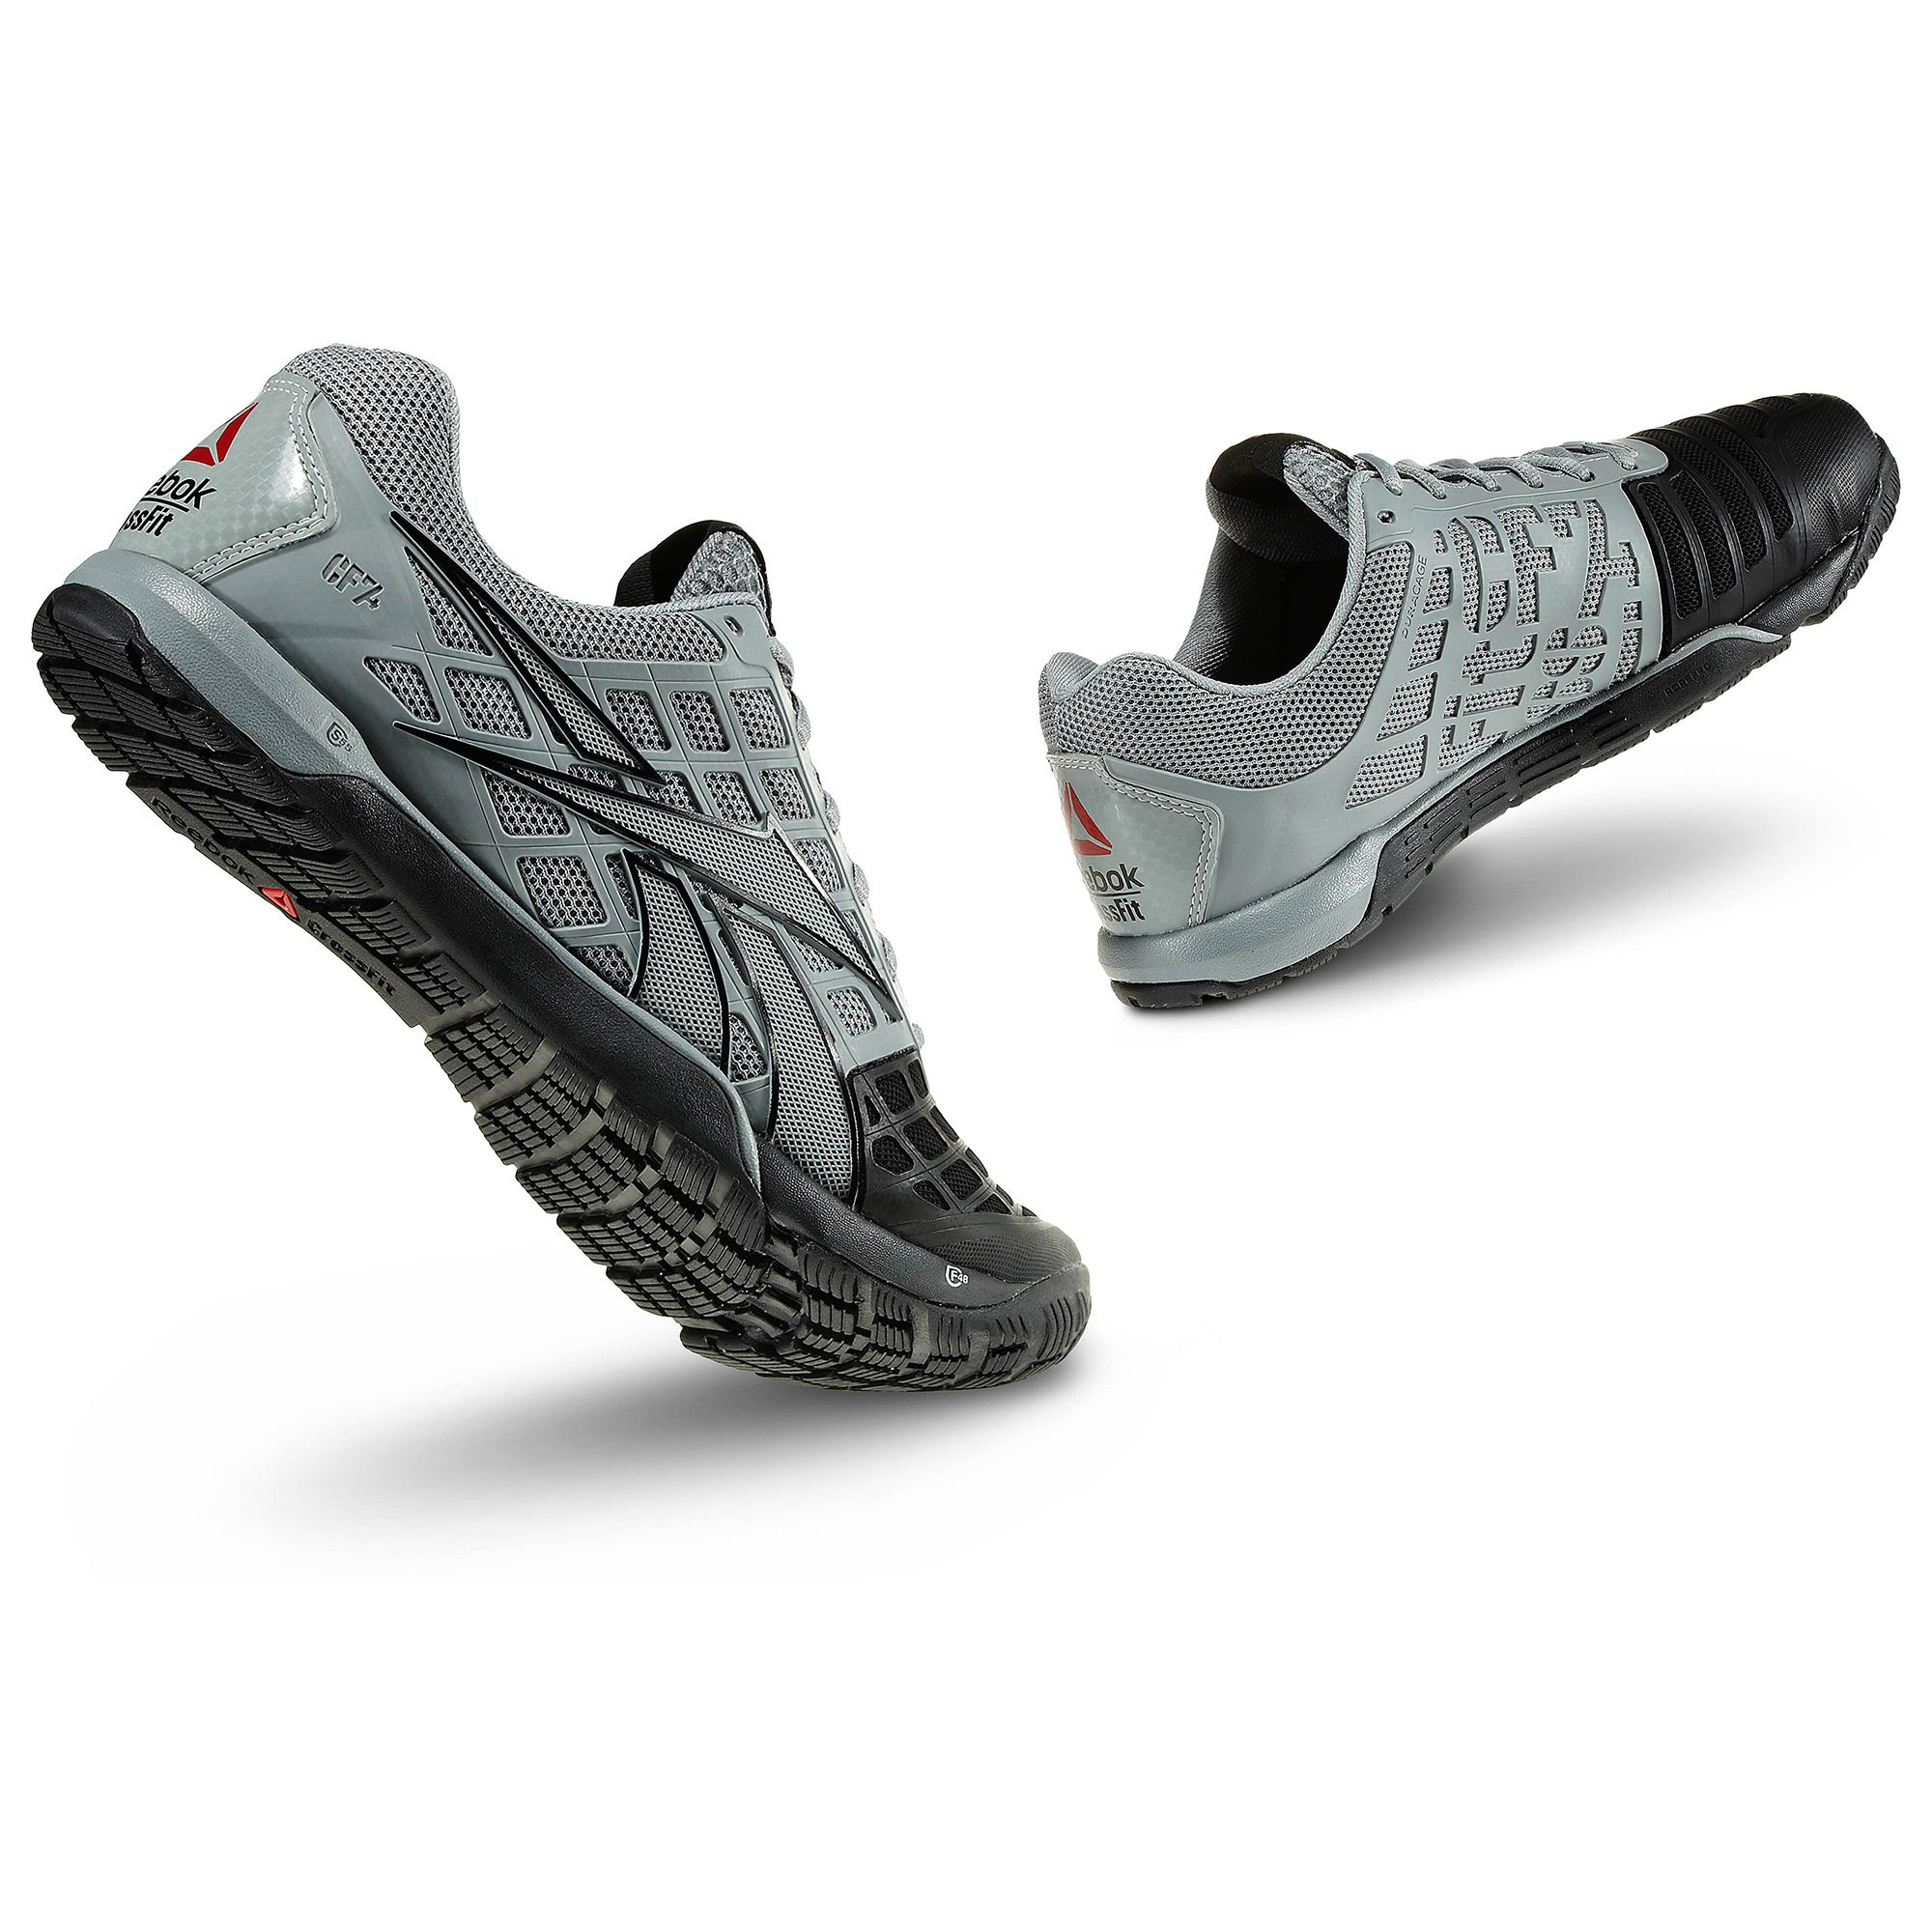 Reebok-Sports-shoes-and-running-shoes-for-men (24)